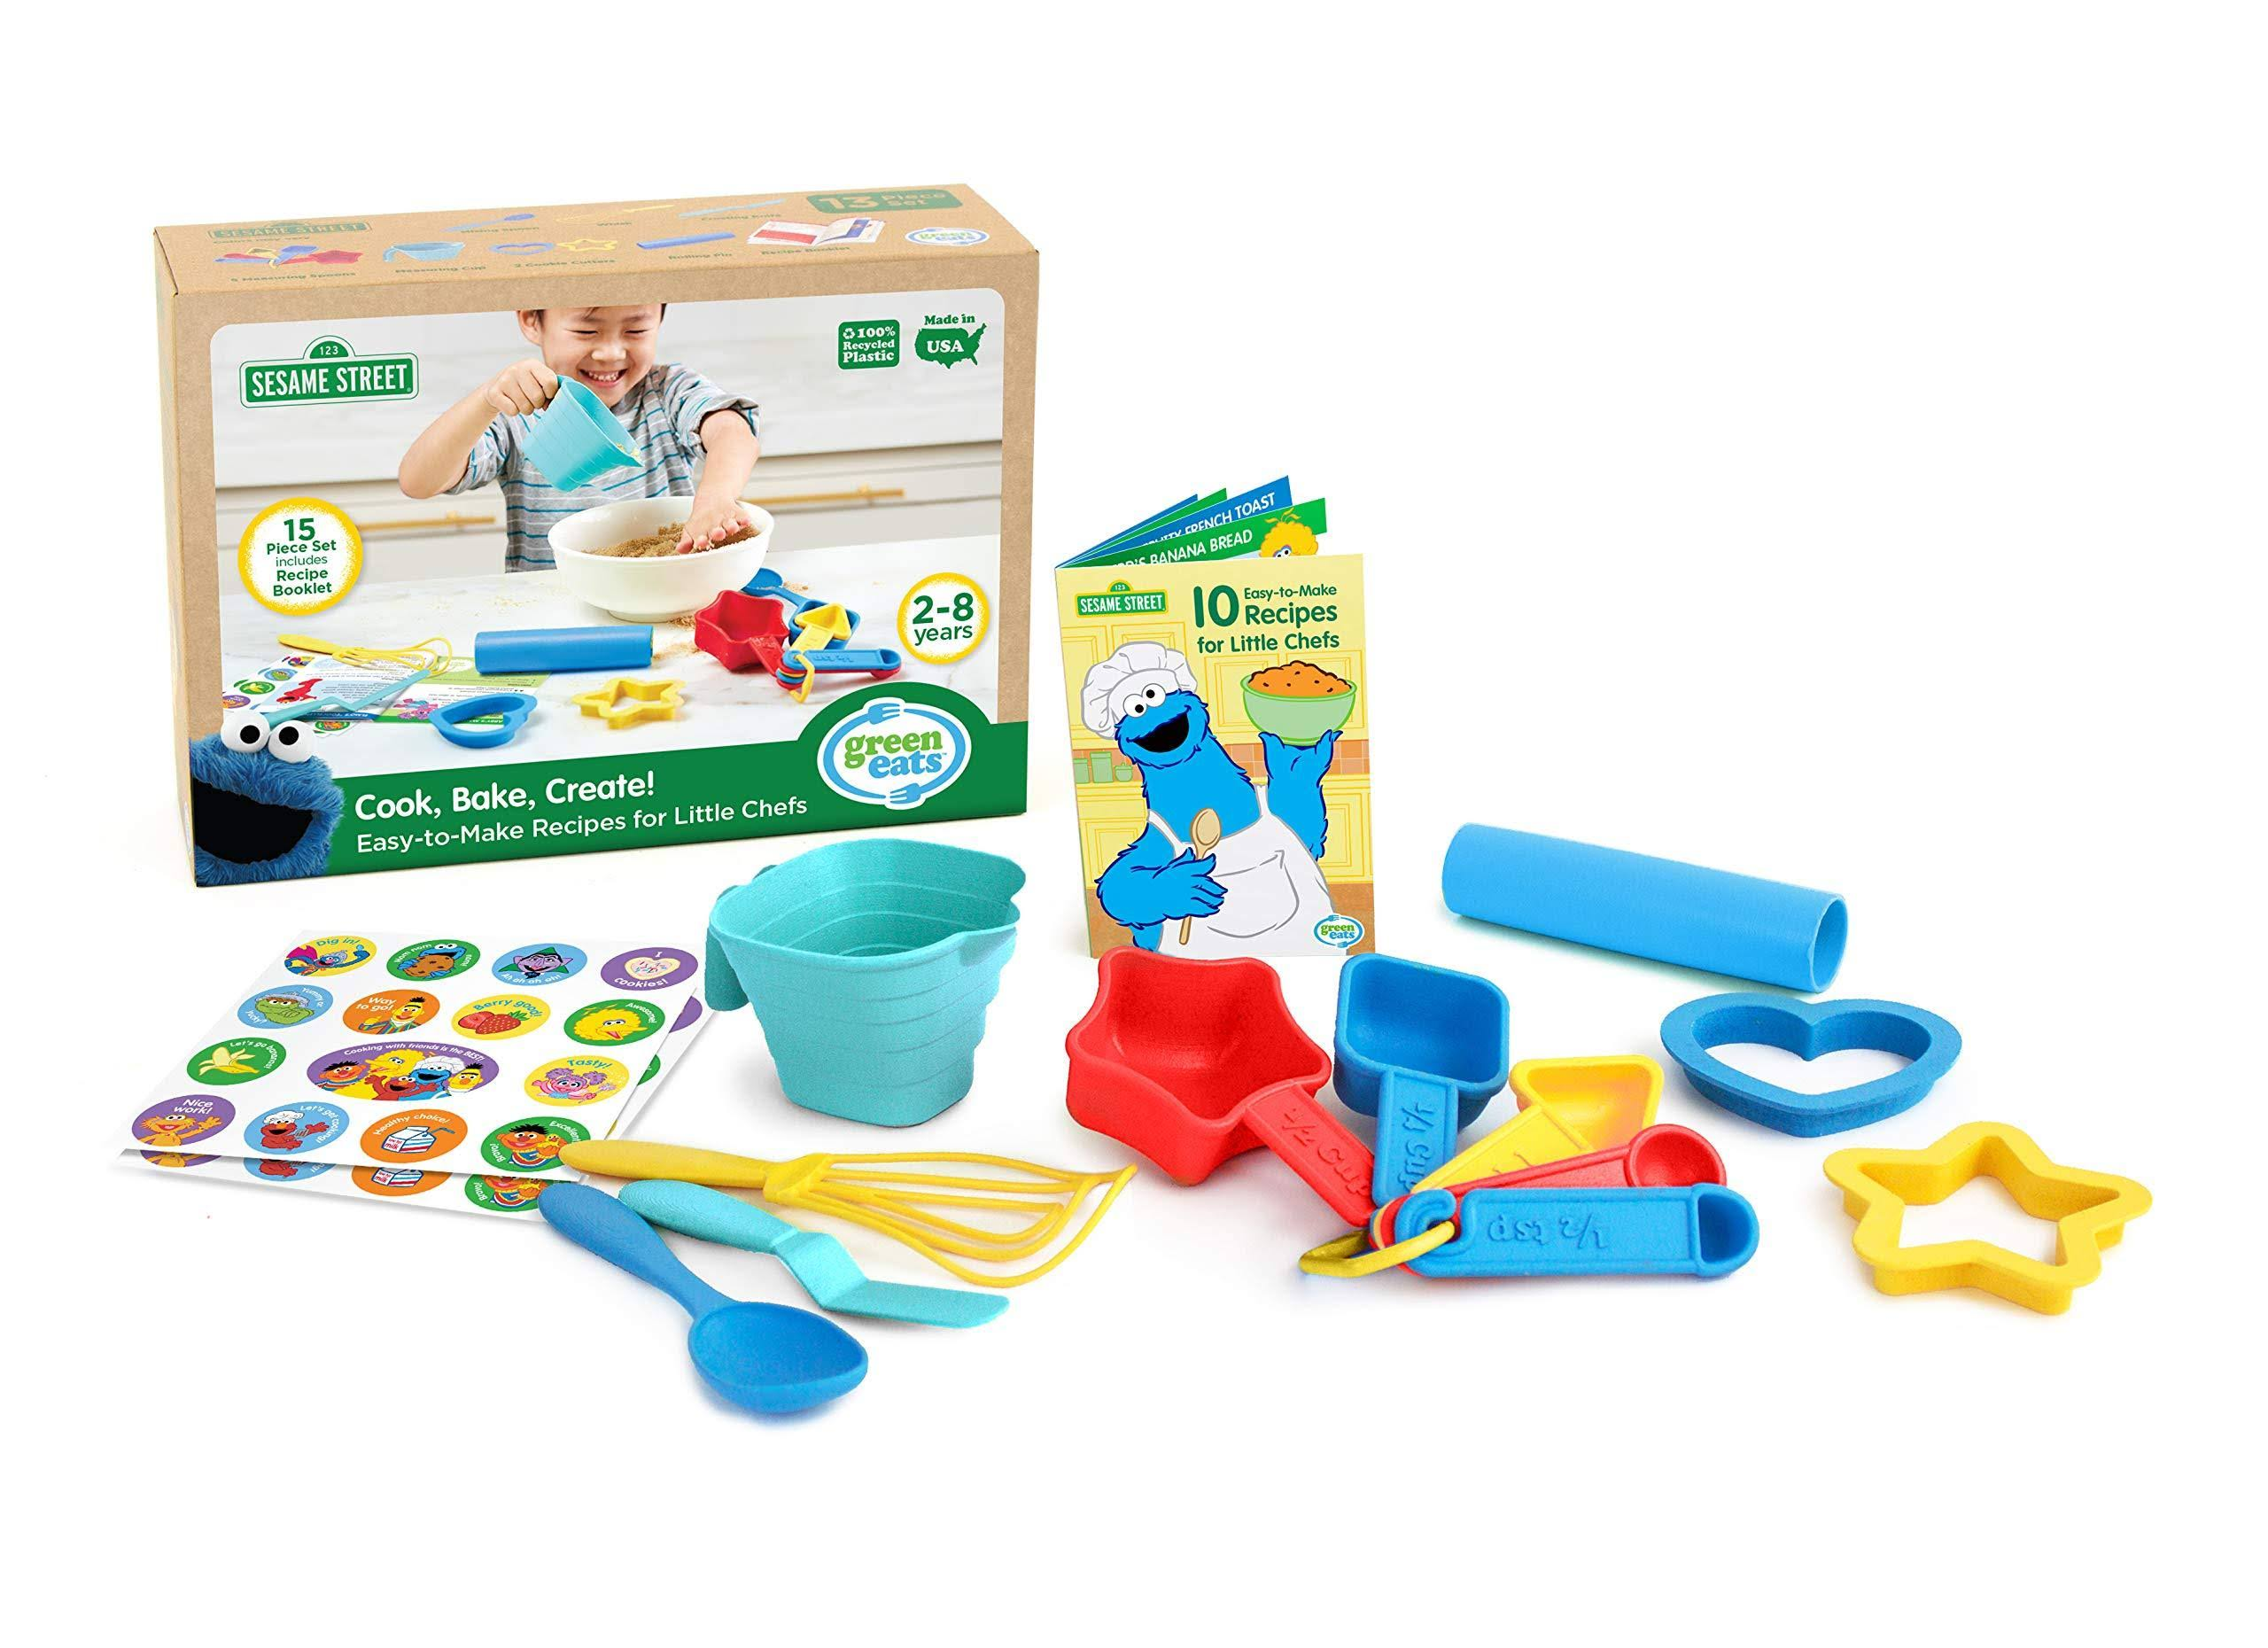 Green Toys Cook, Bake, Create Recipe Activity Set